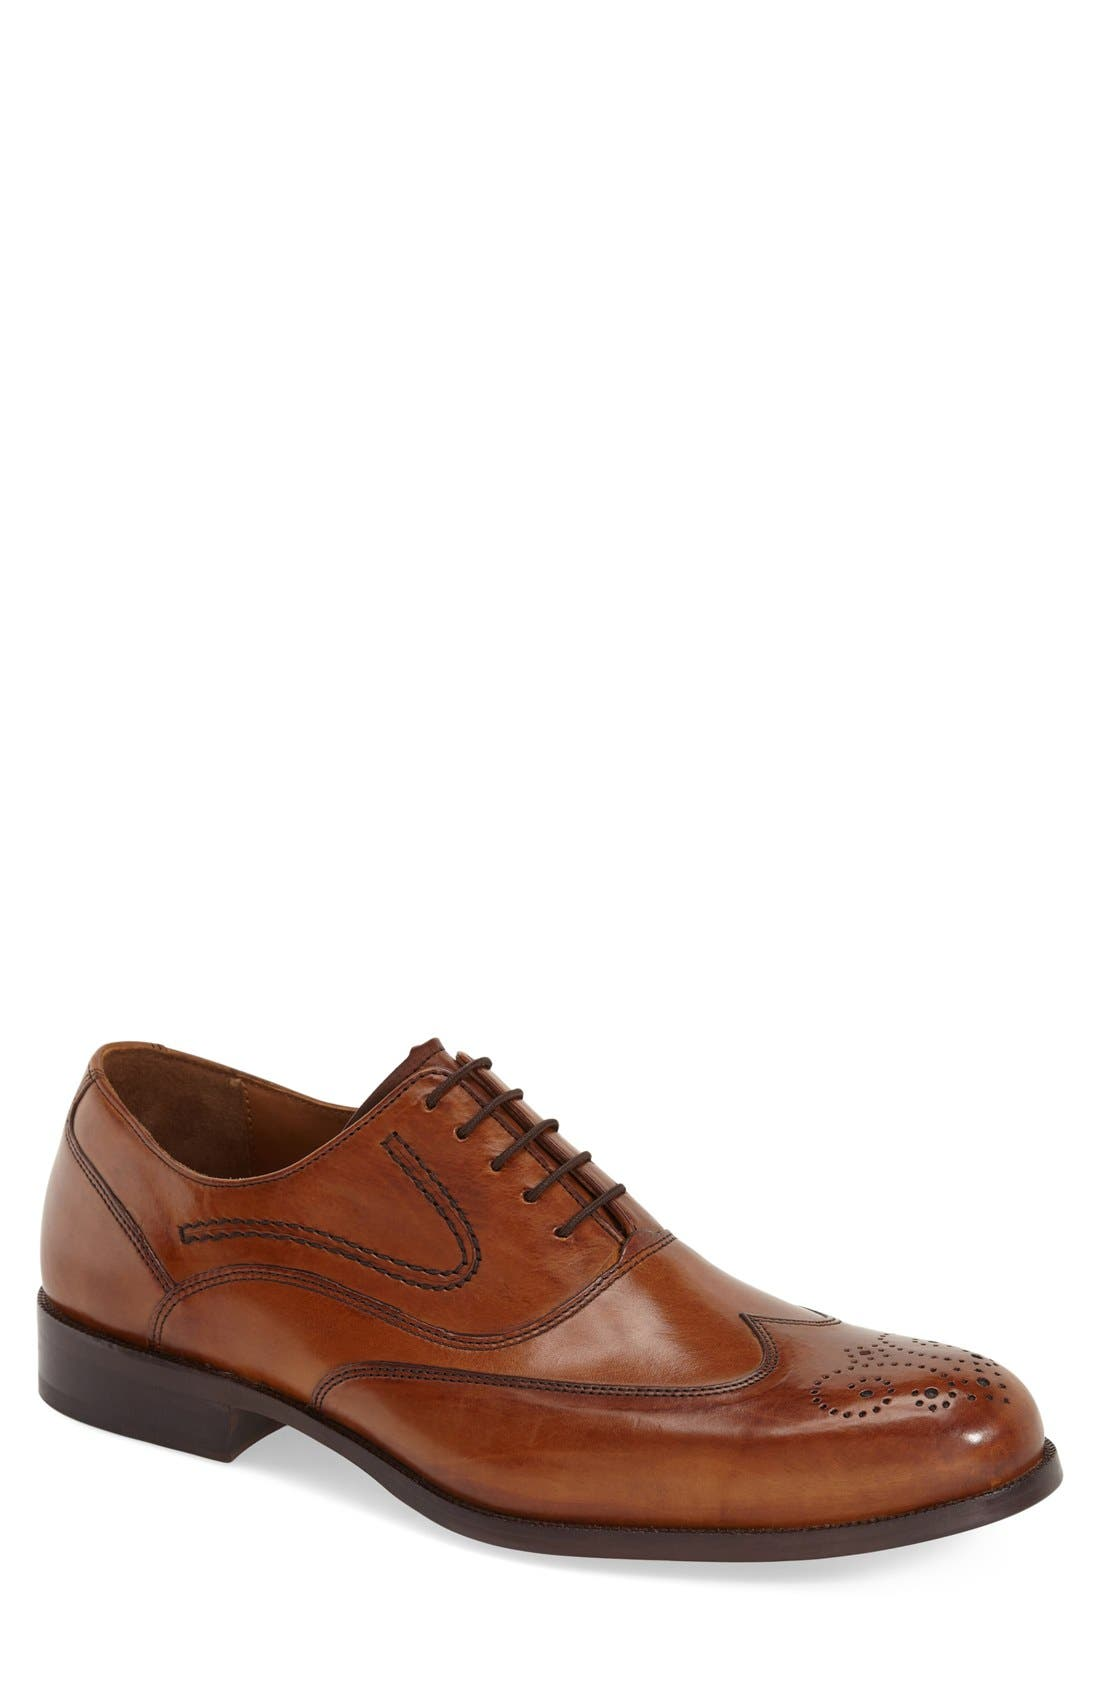 'Stratton' Wingtip Oxford,                         Main,                         color, 240